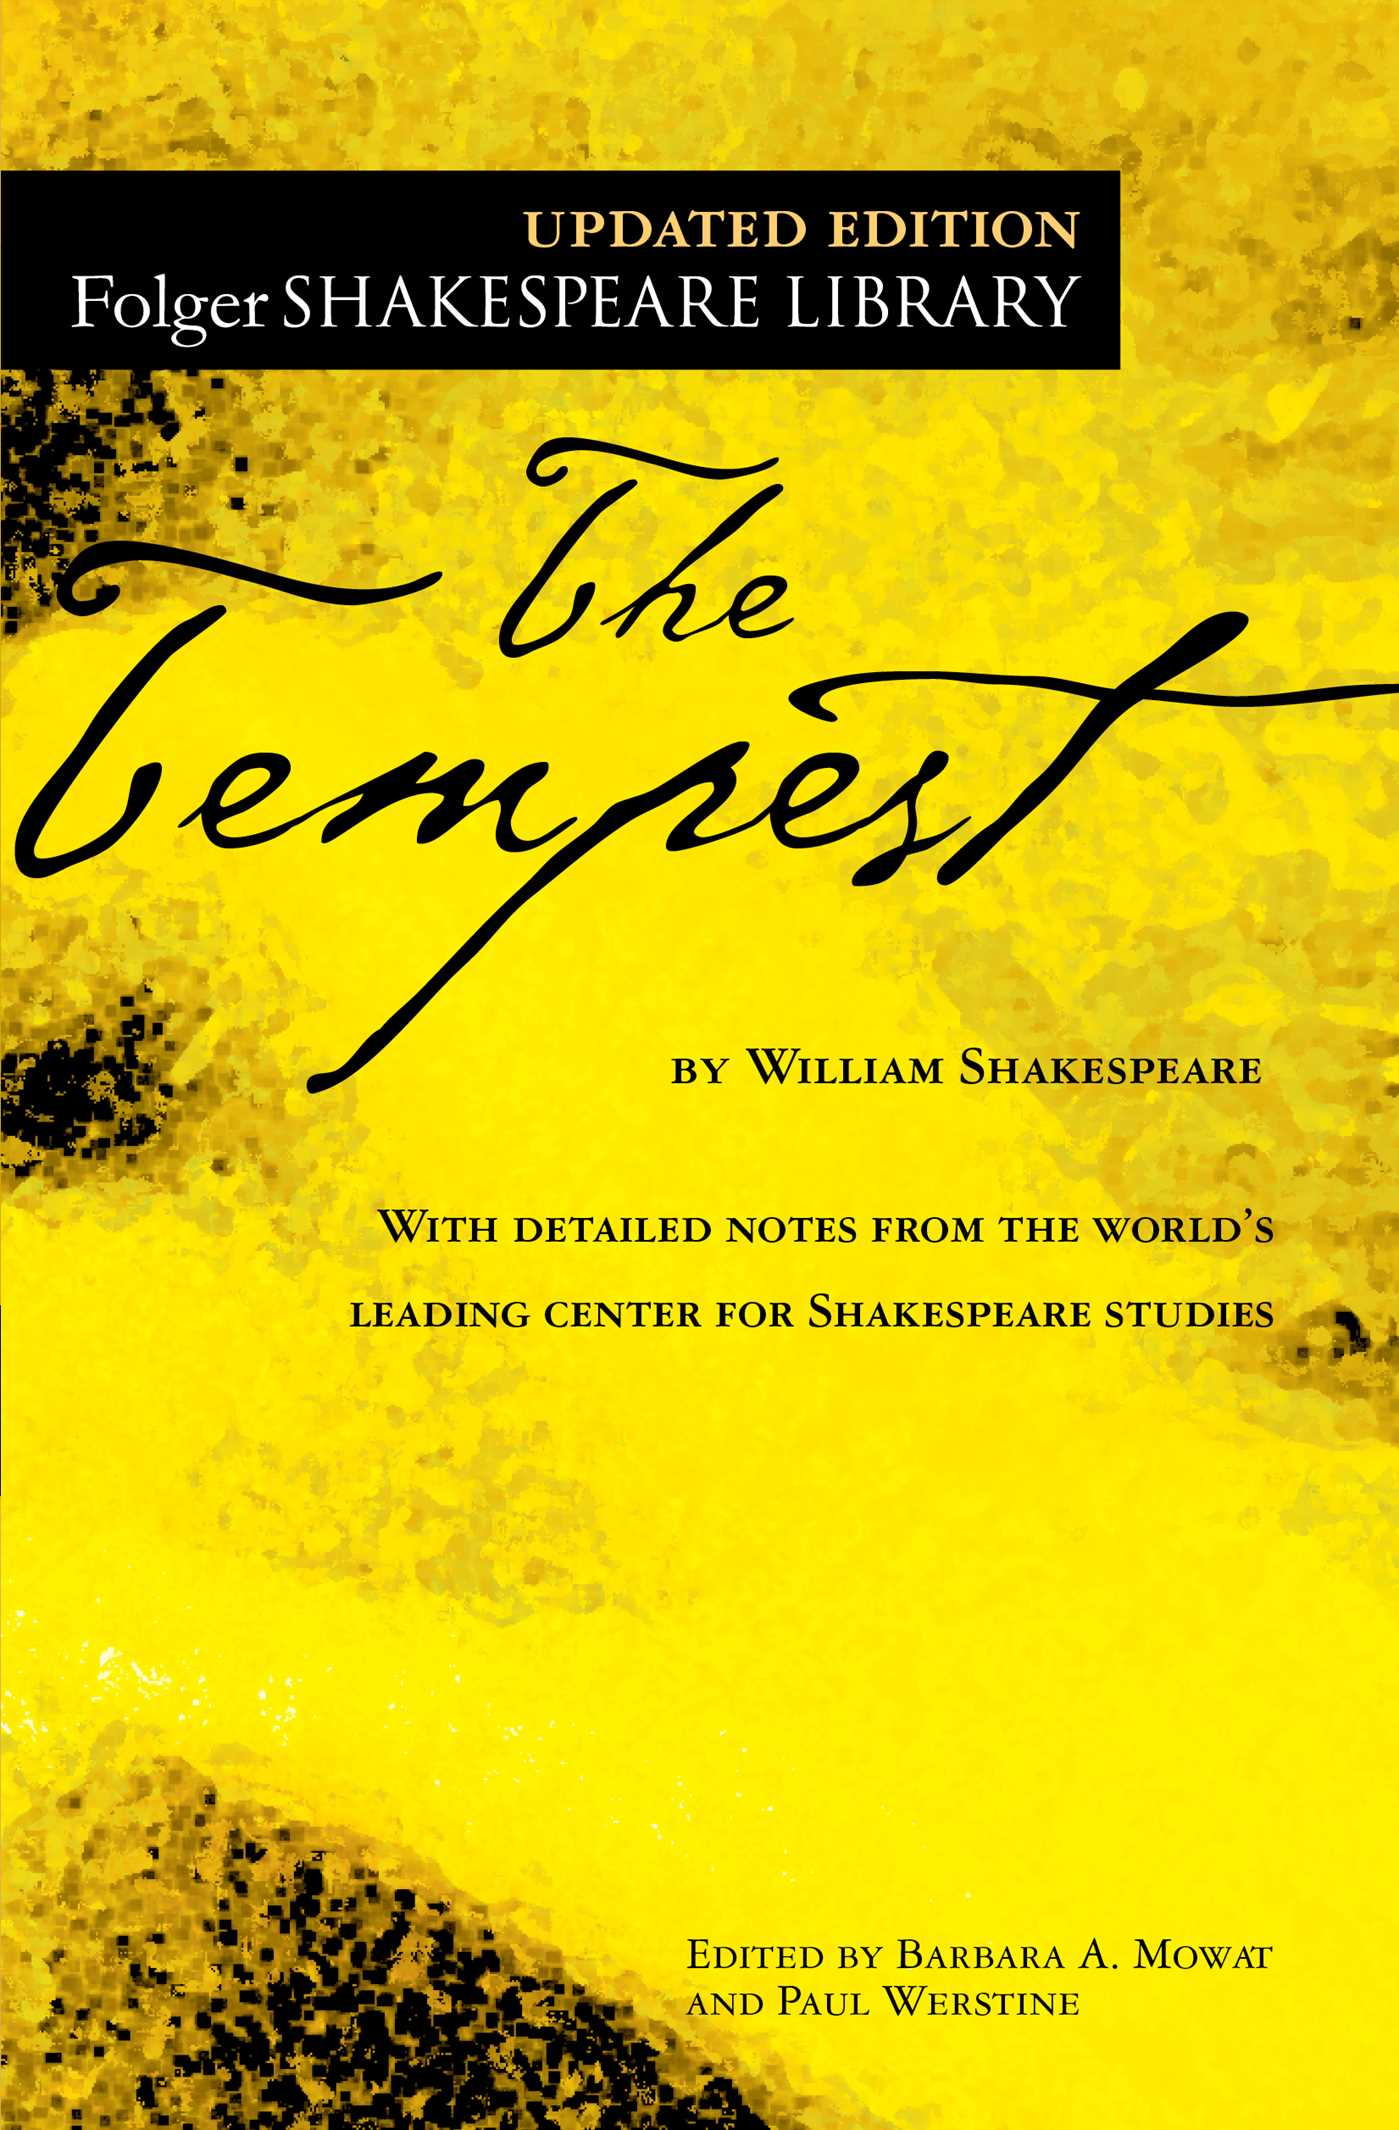 forgiveness and reconciliation in the tempest essay Forgiveness and reconciliation in the tempest many scholars argue that, along with shakespeare's other late romances, the tempest is a play about reconciliation.